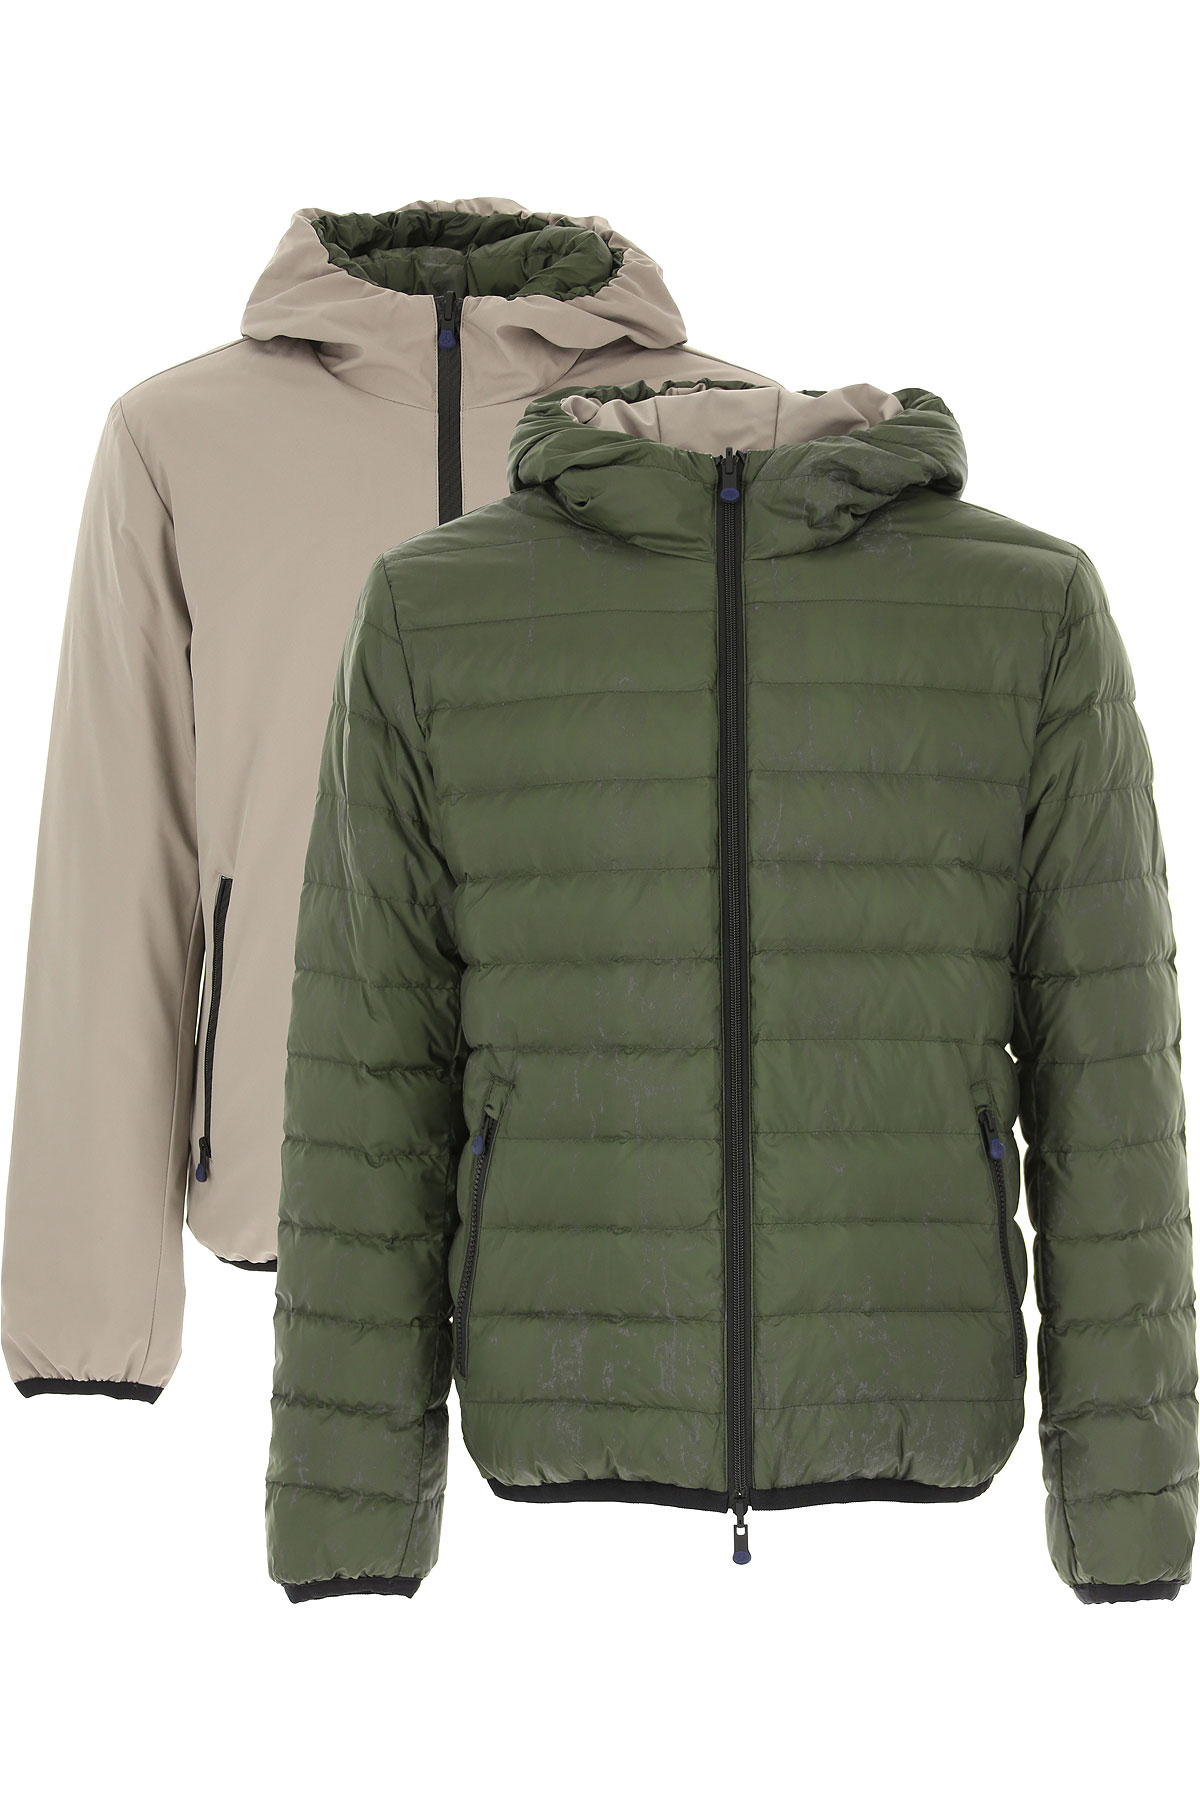 People of Shibuya Costume Homme Pas cher en Soldes, Vert, Polyester, 2019, M S XXL